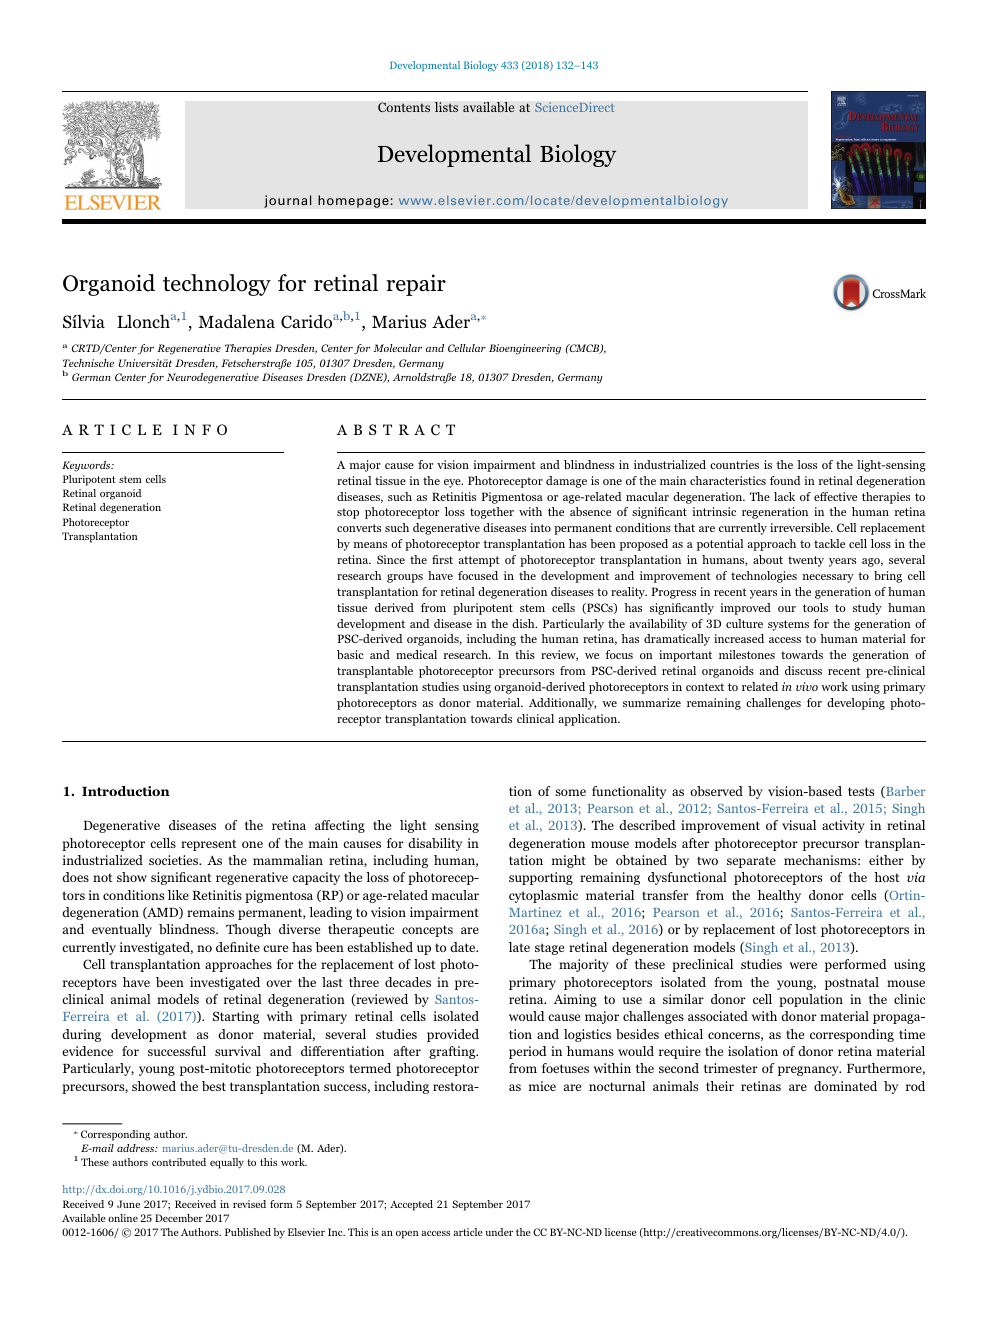 Organoid technology for retinal repair – topic of research